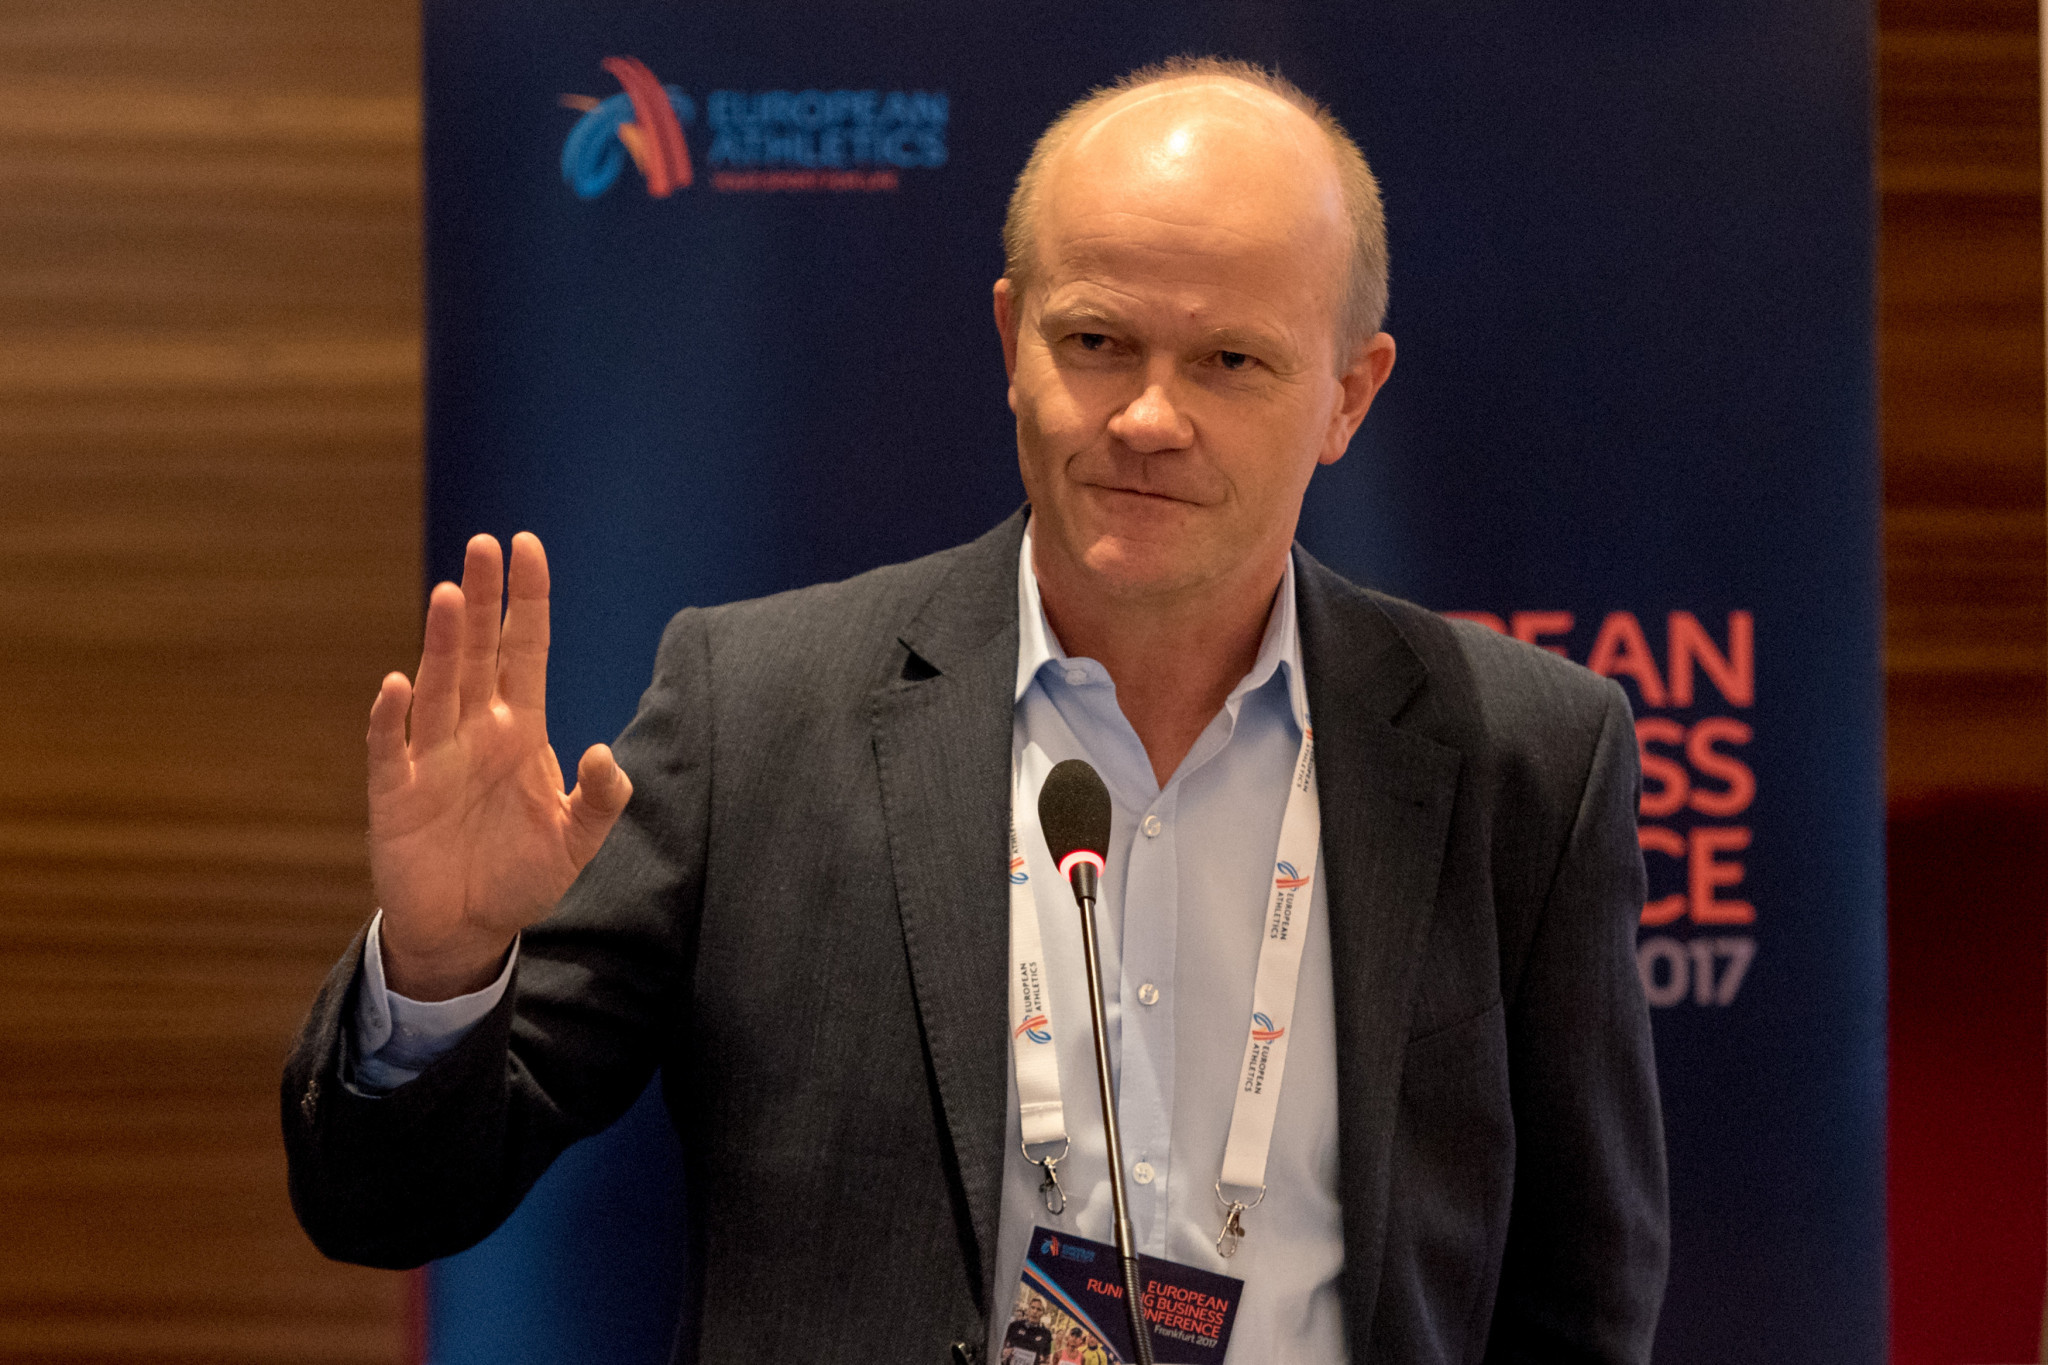 Aarhus 2019 director Larsen warns stay-away European Federations risk becoming disconnected with the sport